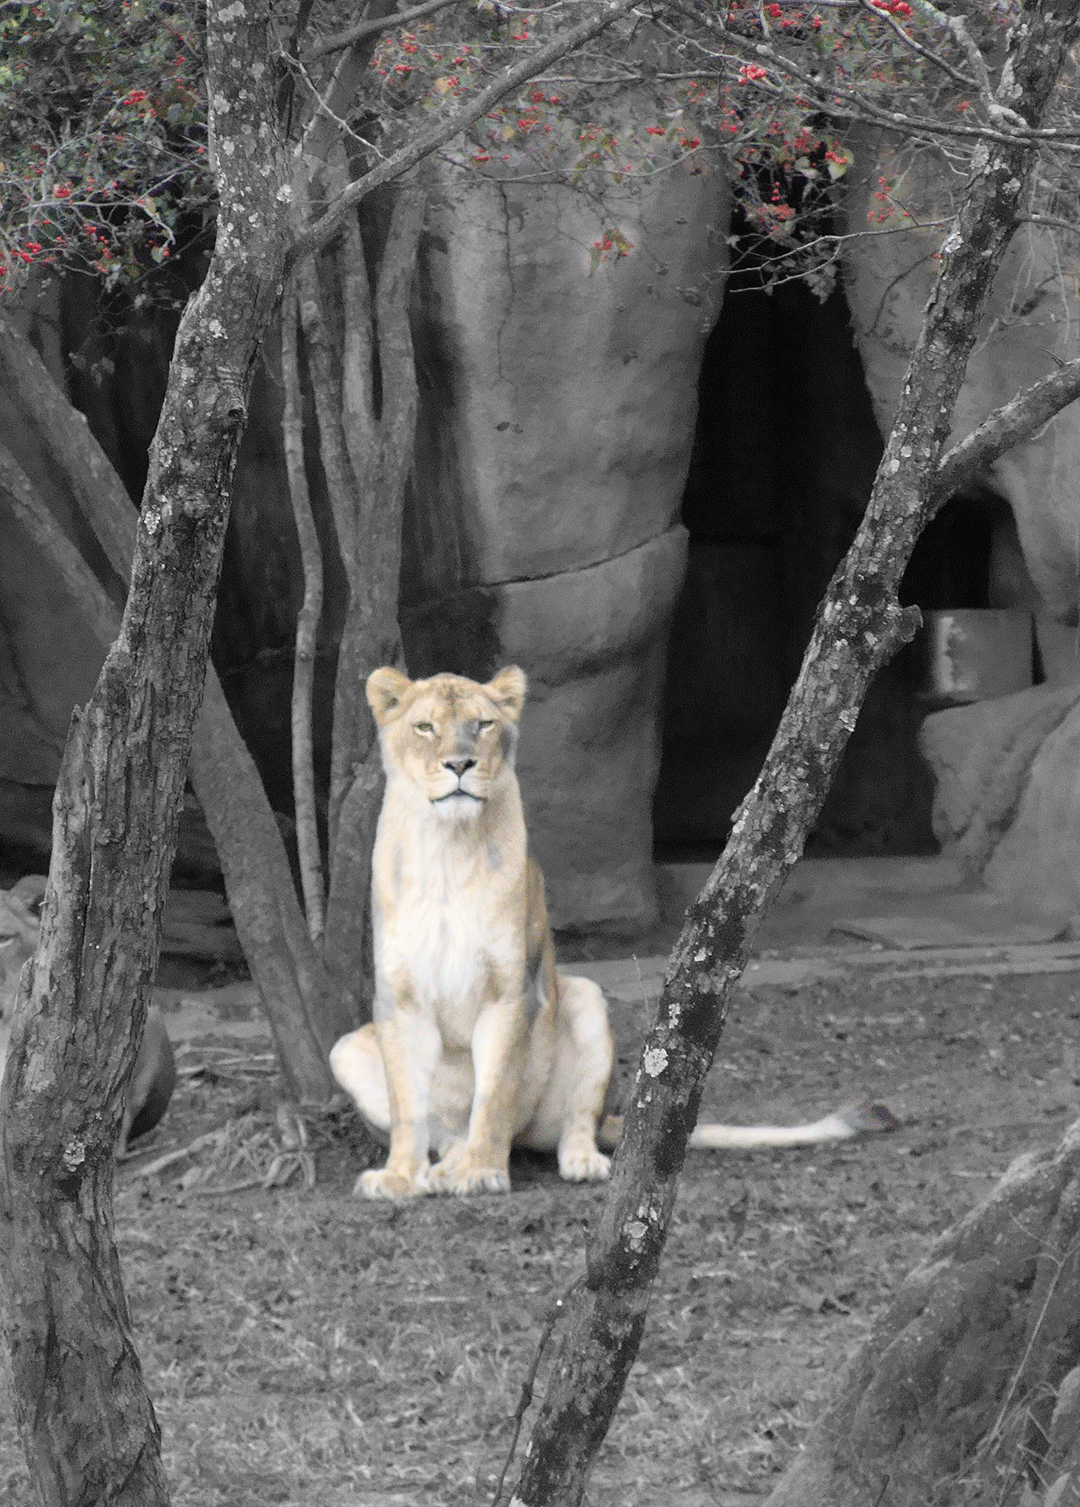 Lioness at the zoo.